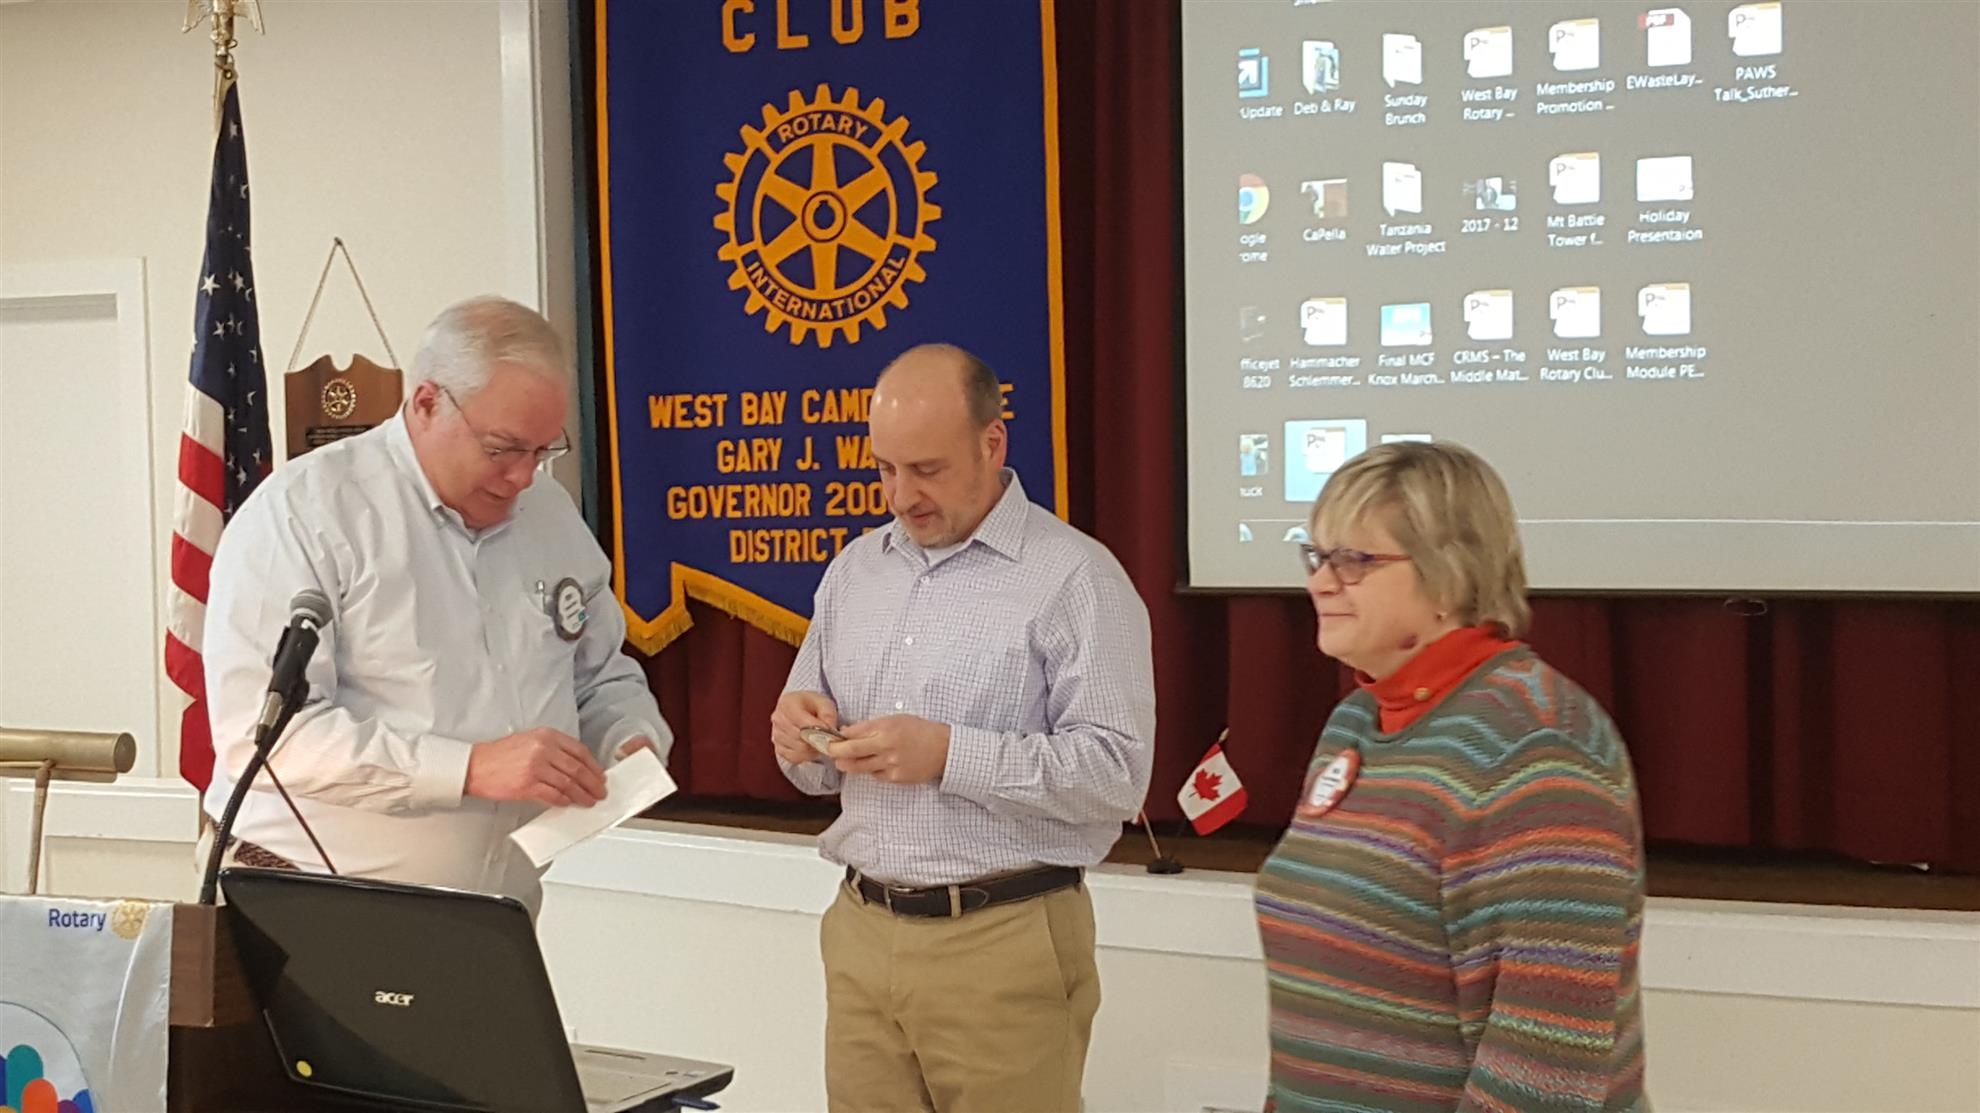 December 7, 2017 Meeting of West Bay Rotary (Dec 09, 2017)